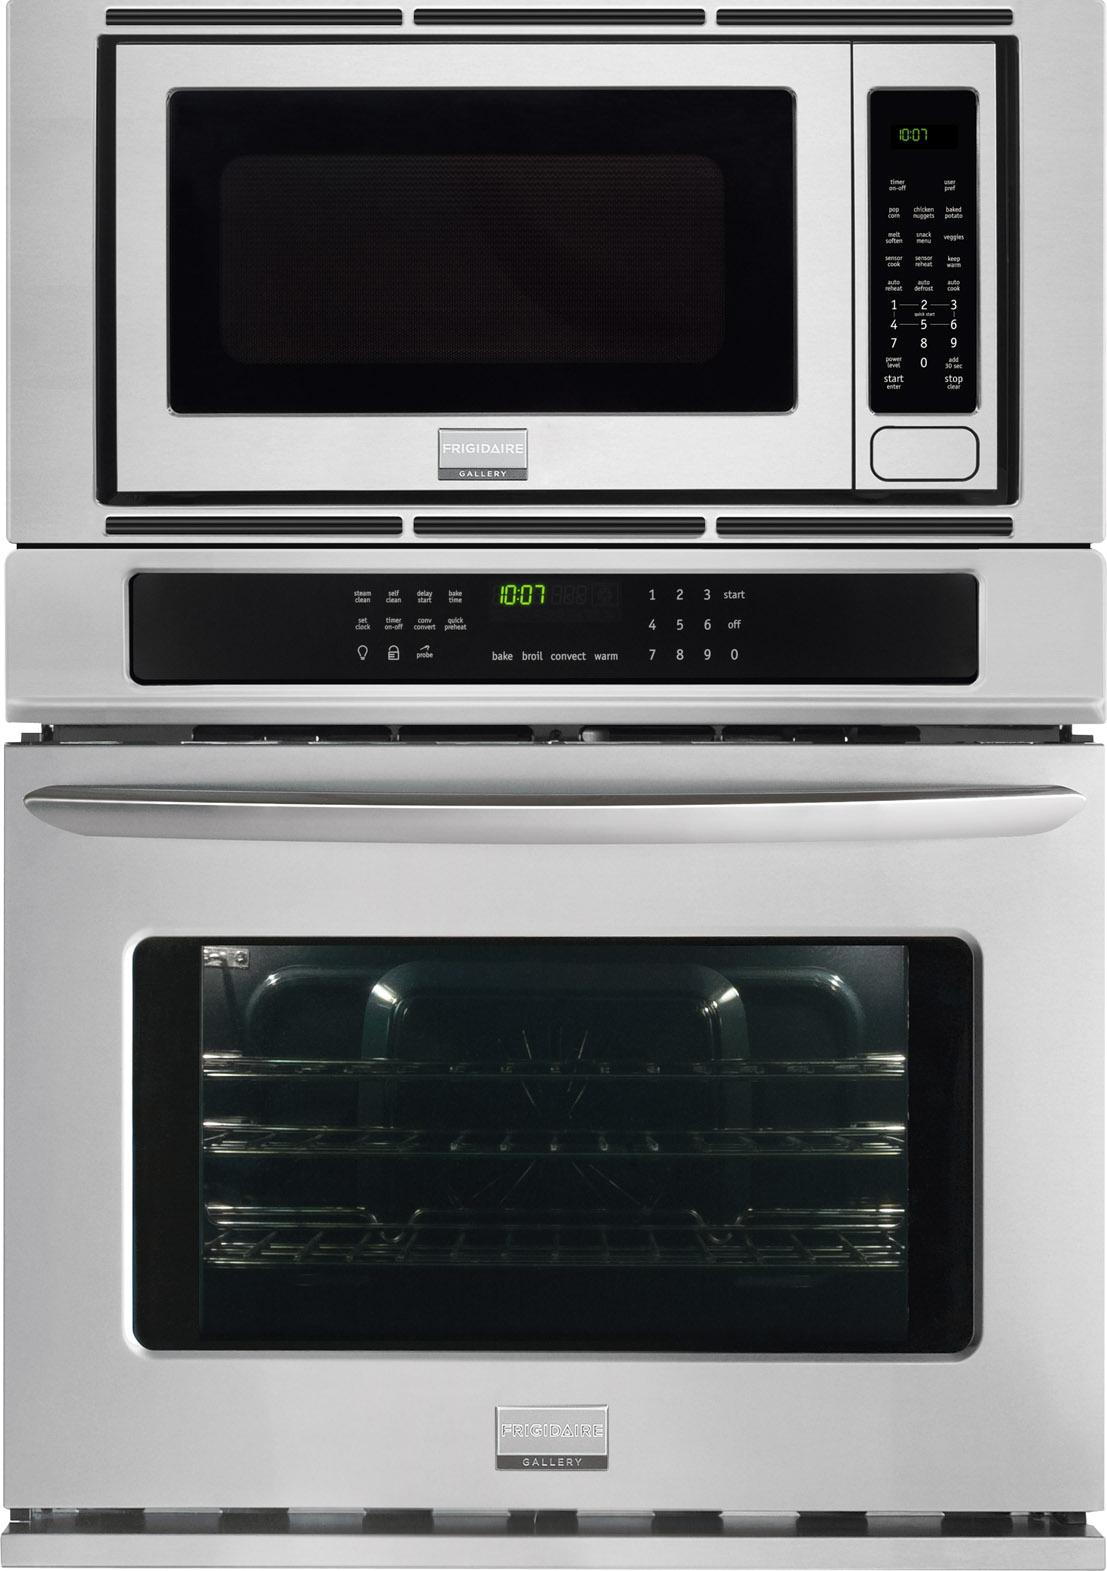 Frigidaire Frigidaire Gallery Ovens Gallery 30'' Electric Wall Oven/Microwave  - Item Number: FGMC3065PF